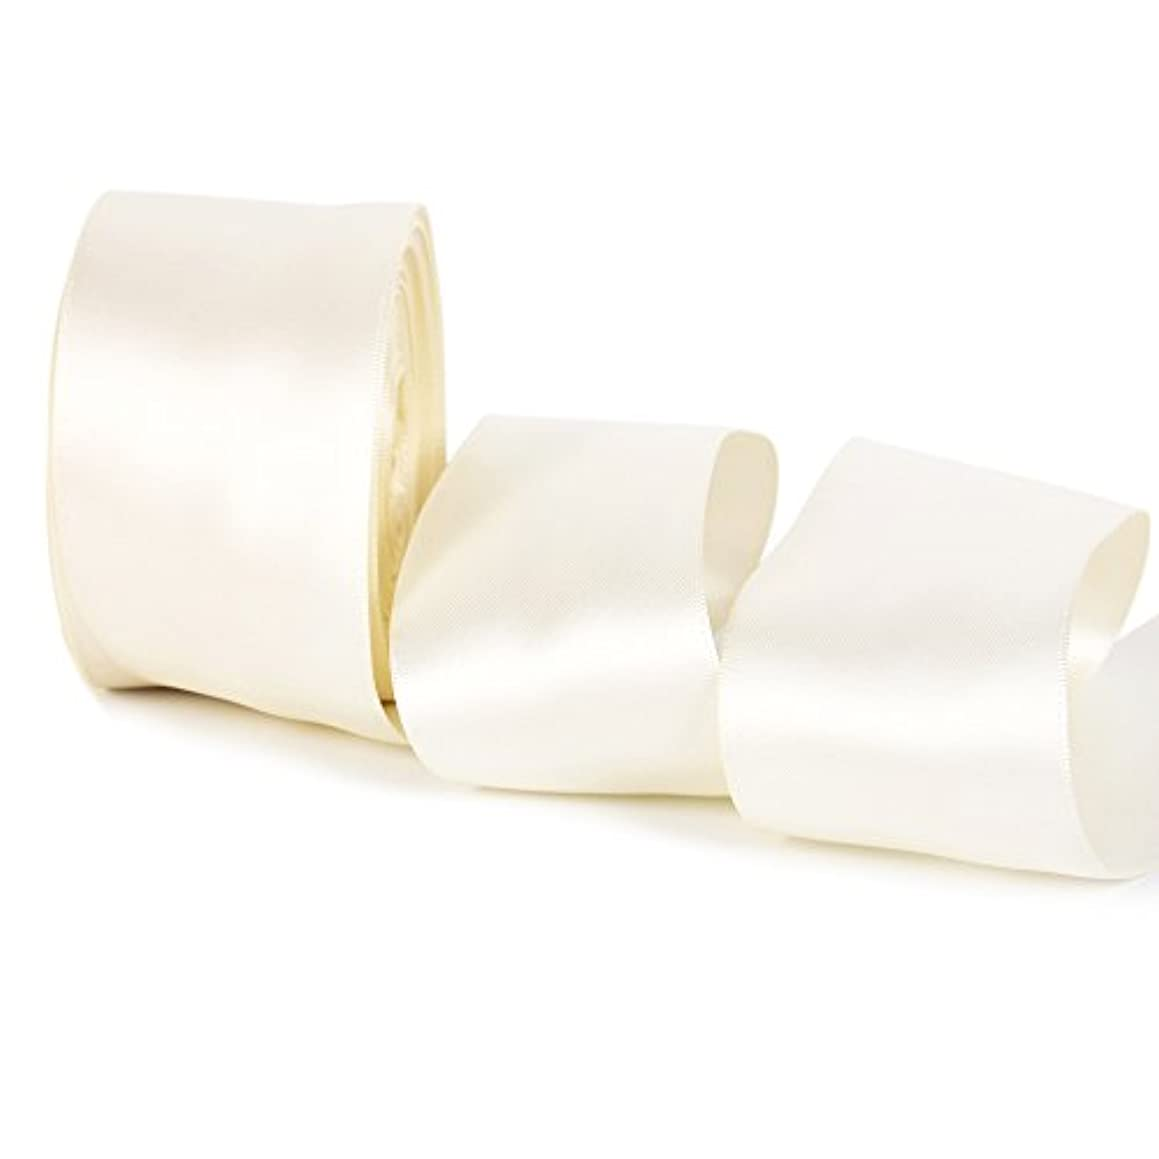 Double Face Satin Ribbon 20 Yards for Party Wedding Home Decoration Handmade Craft (2